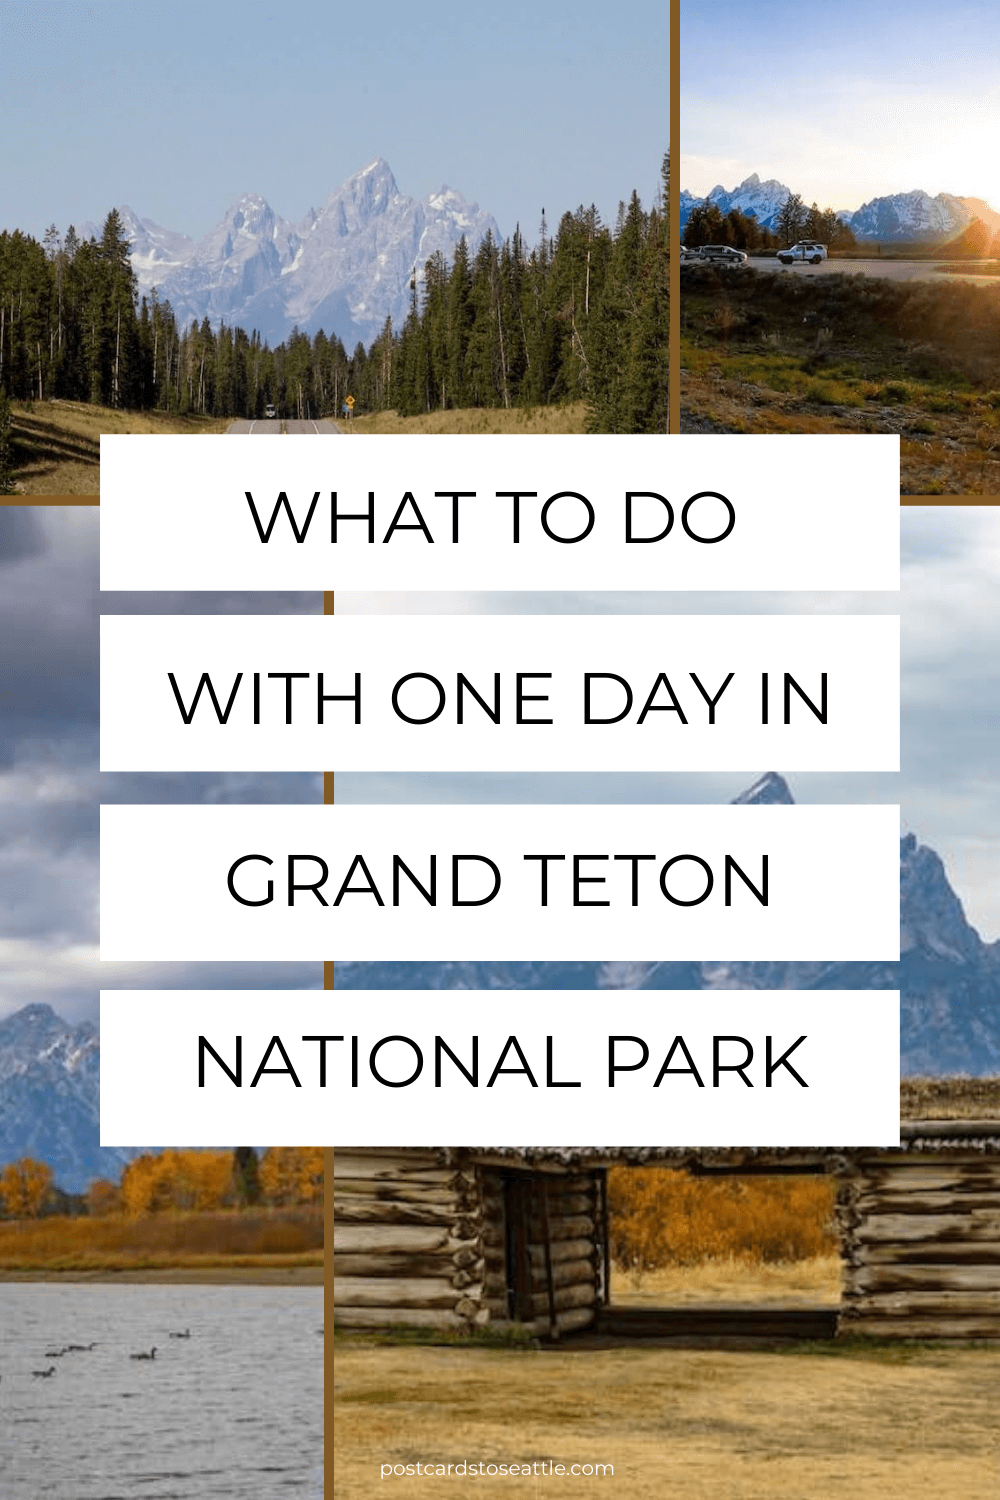 How to Spend One Day in Grand Teton National Park